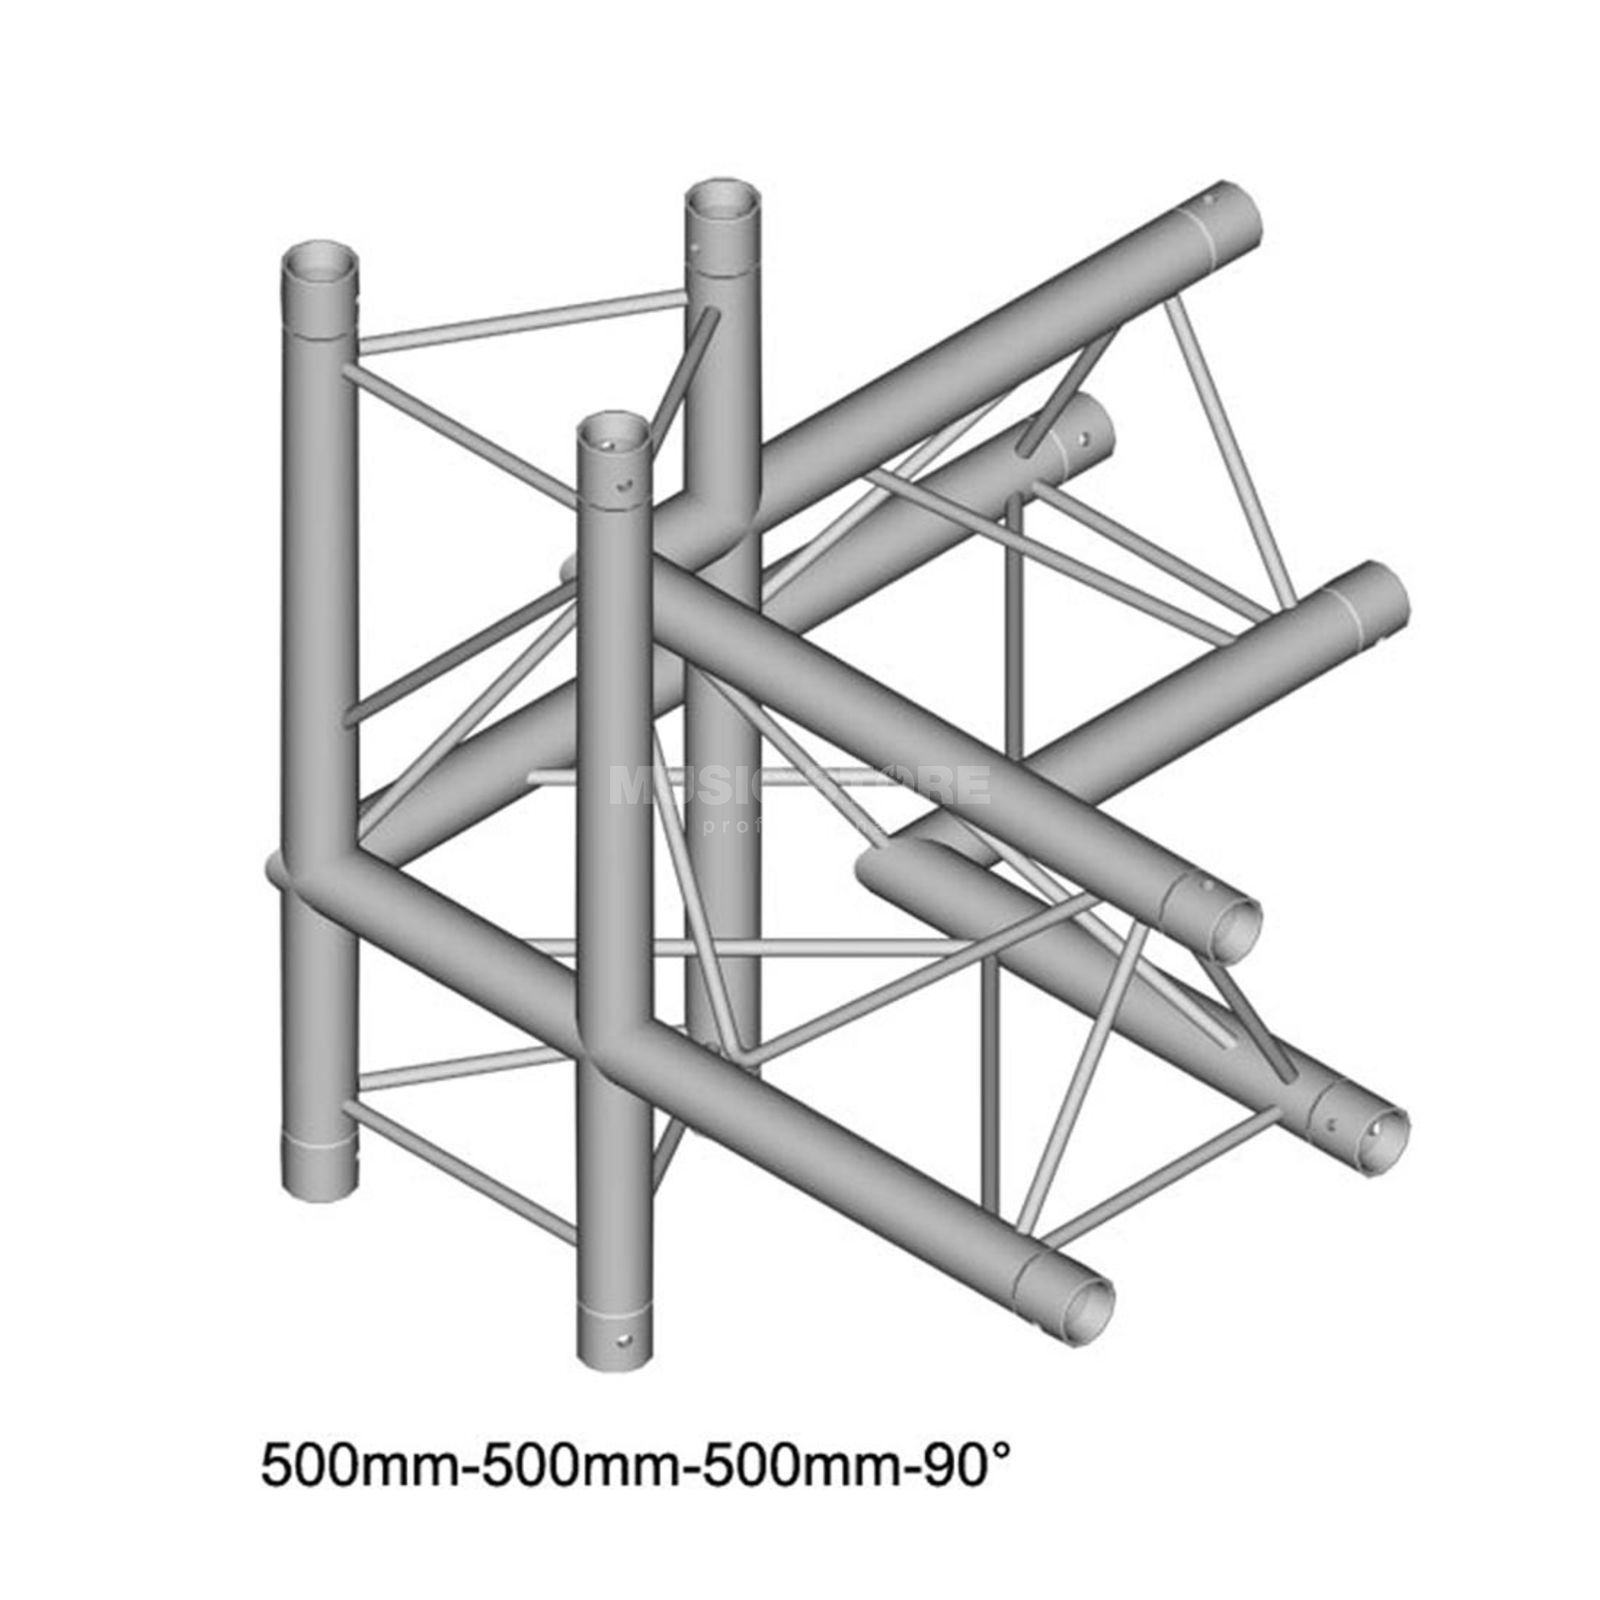 DURATRUSS DT 23 C45-LUD, 3-Punkt Truss 90° Ecke, 4-weg, links Produktbild